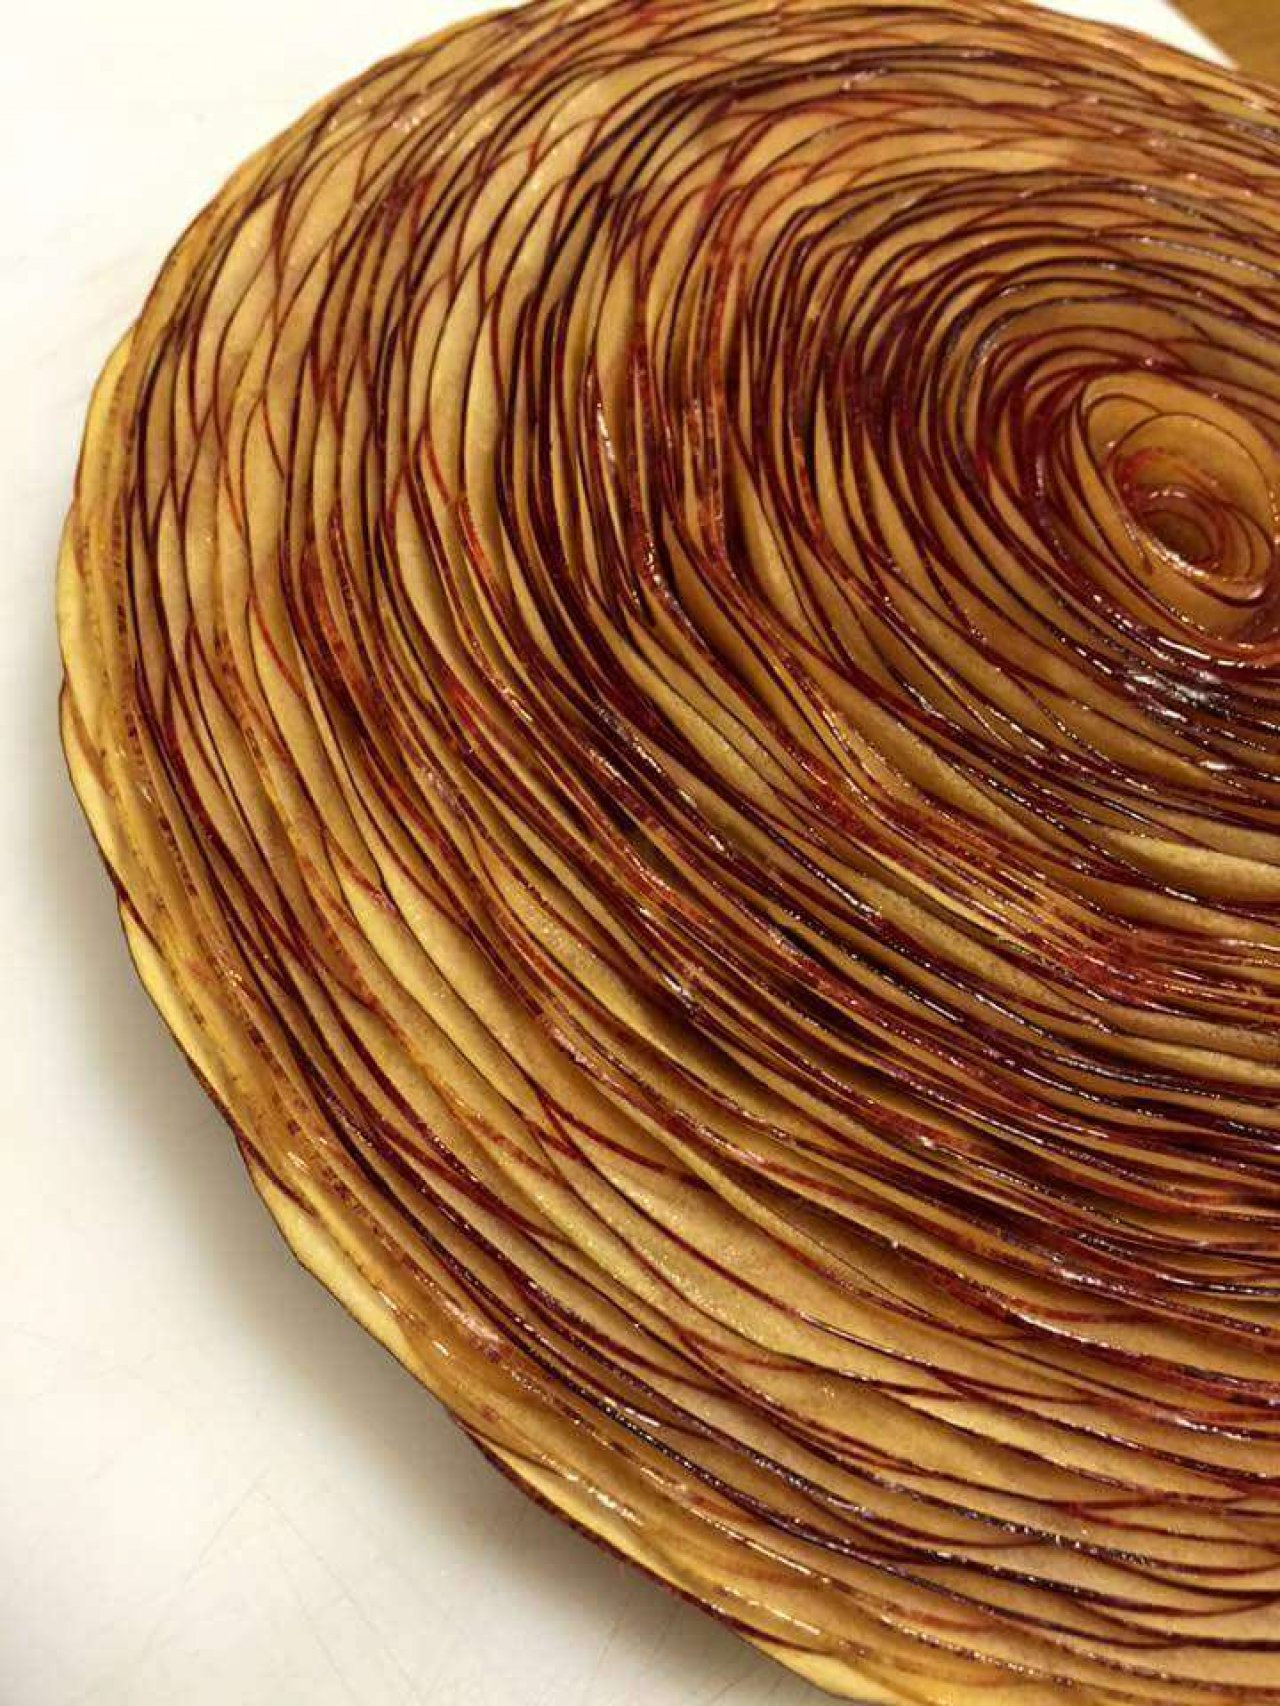 Tarte aux pommes de ma grand mère by Vincent Catala Chef Pâtissier & Cuisinier/French Private Kitchen & Pastry Chef - Catering in Miami